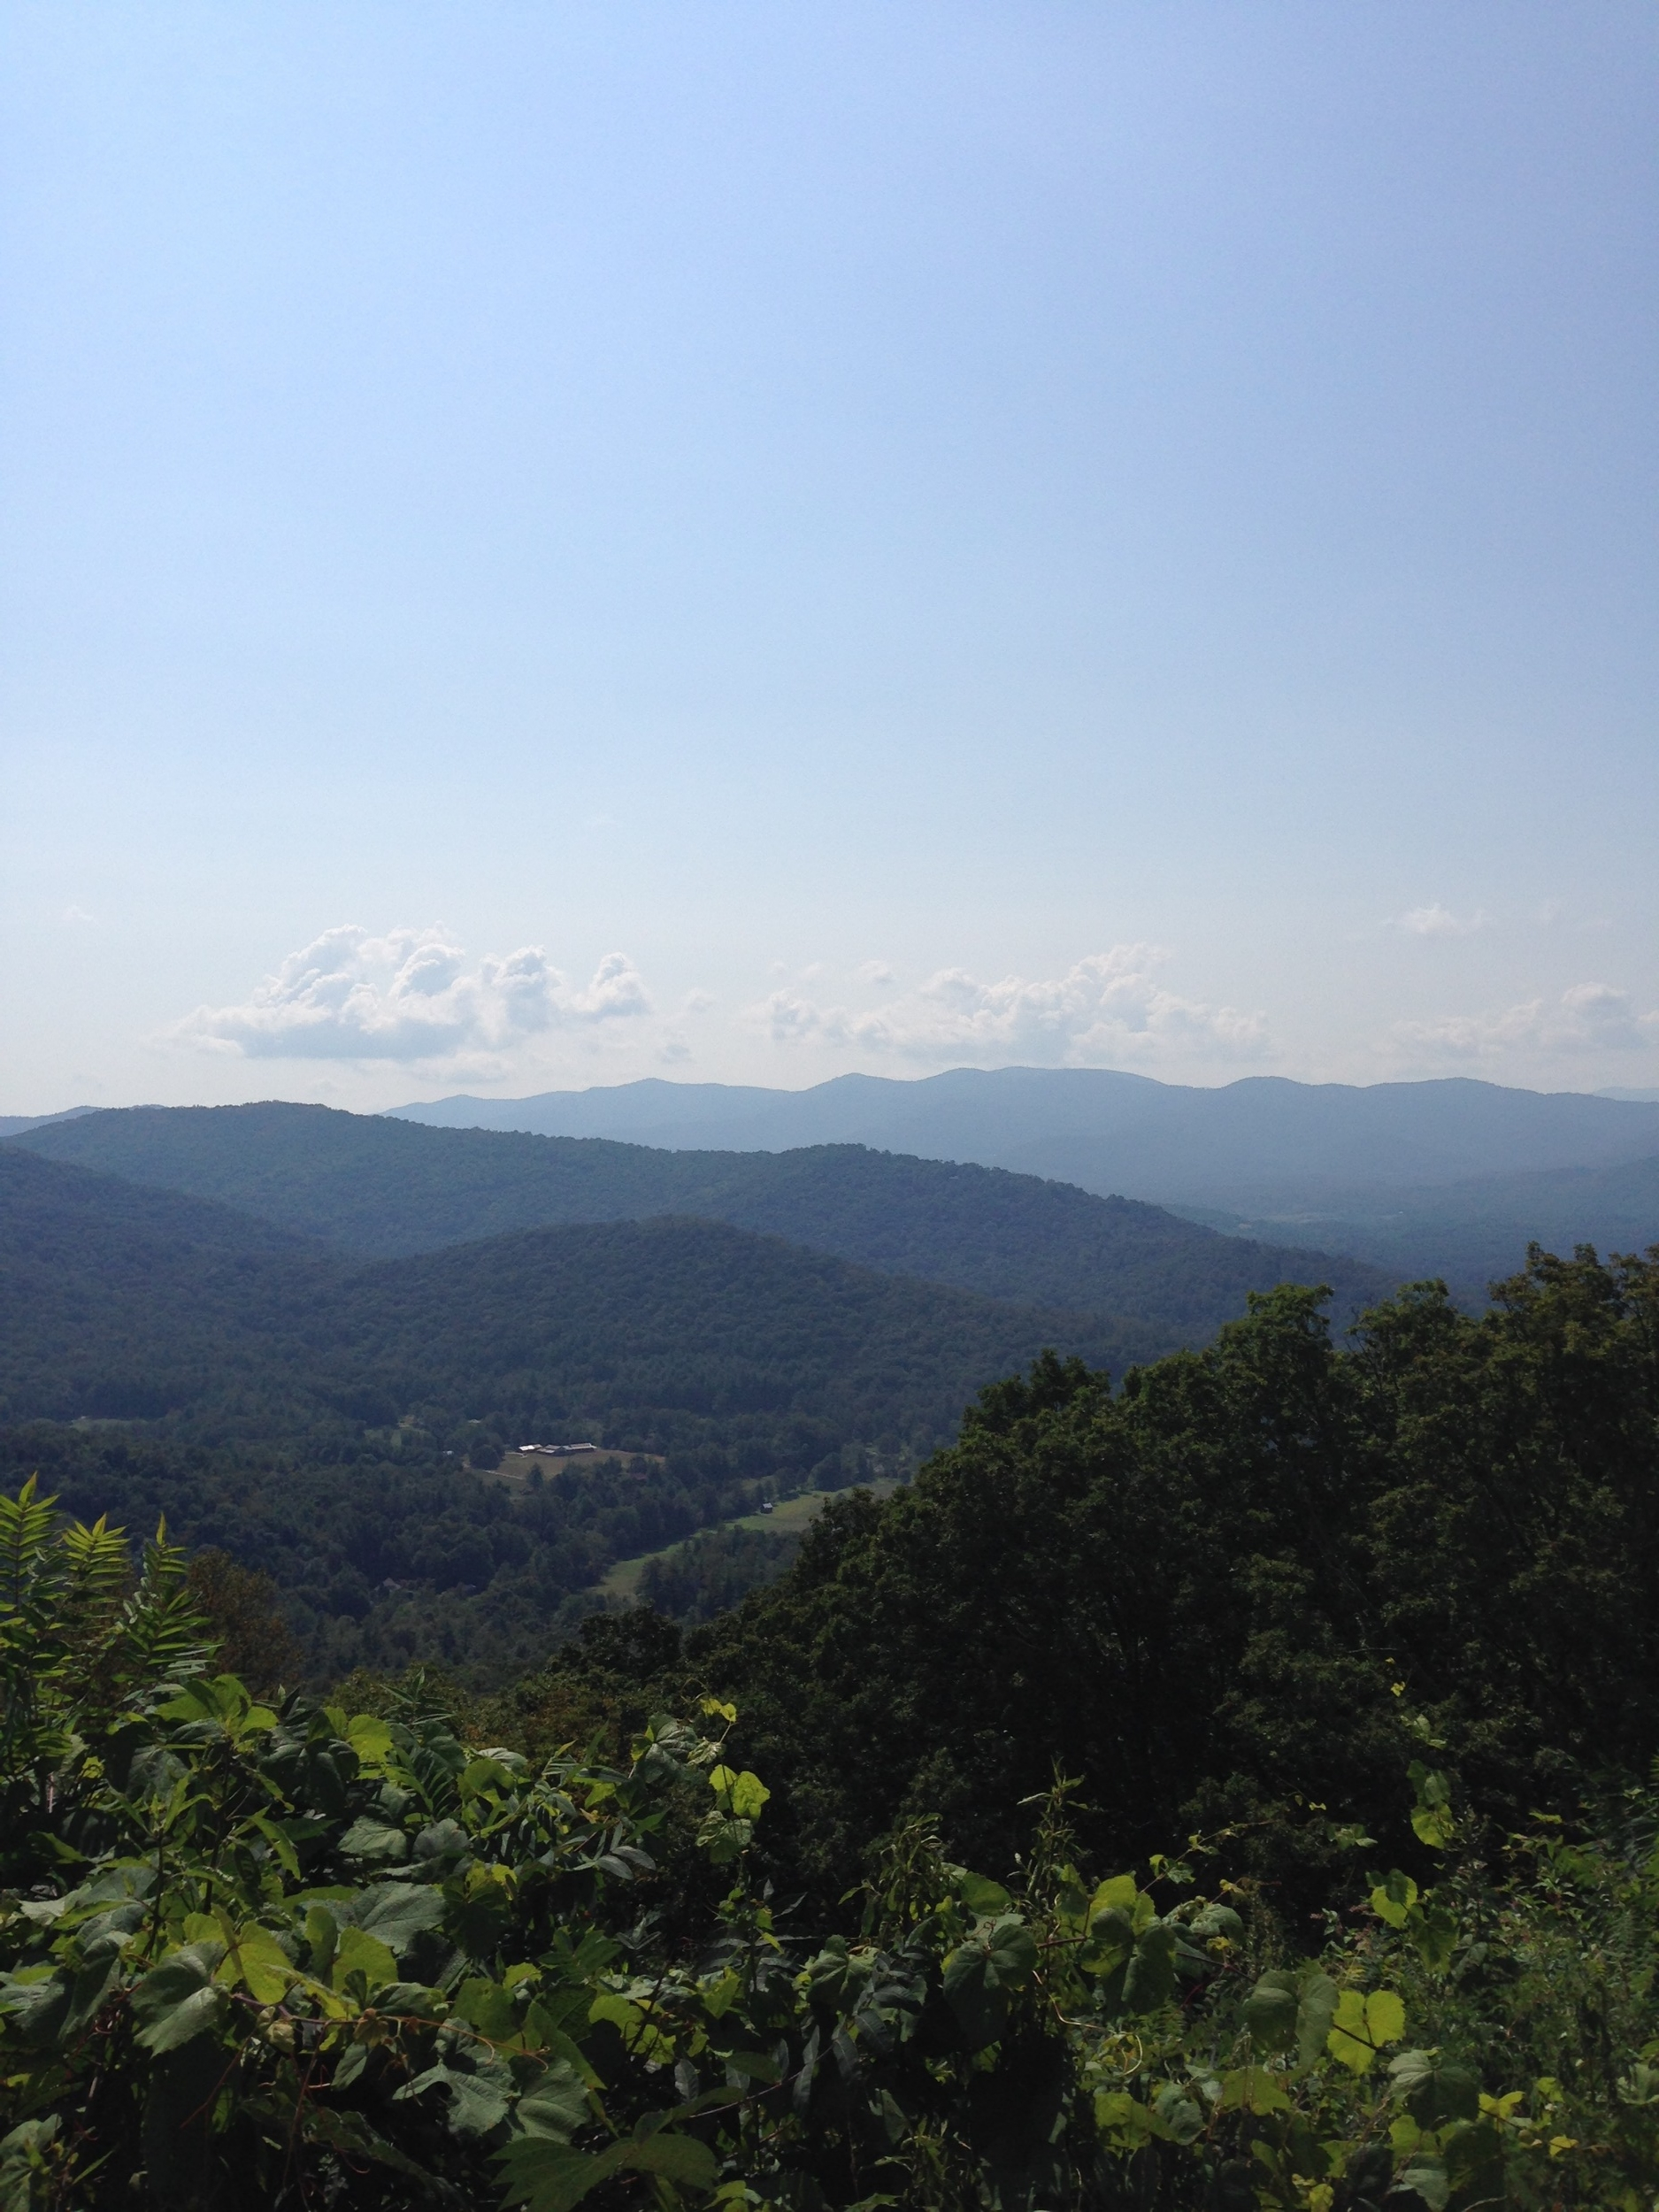 View from the Blue Ridge Parkway in North Carolina.